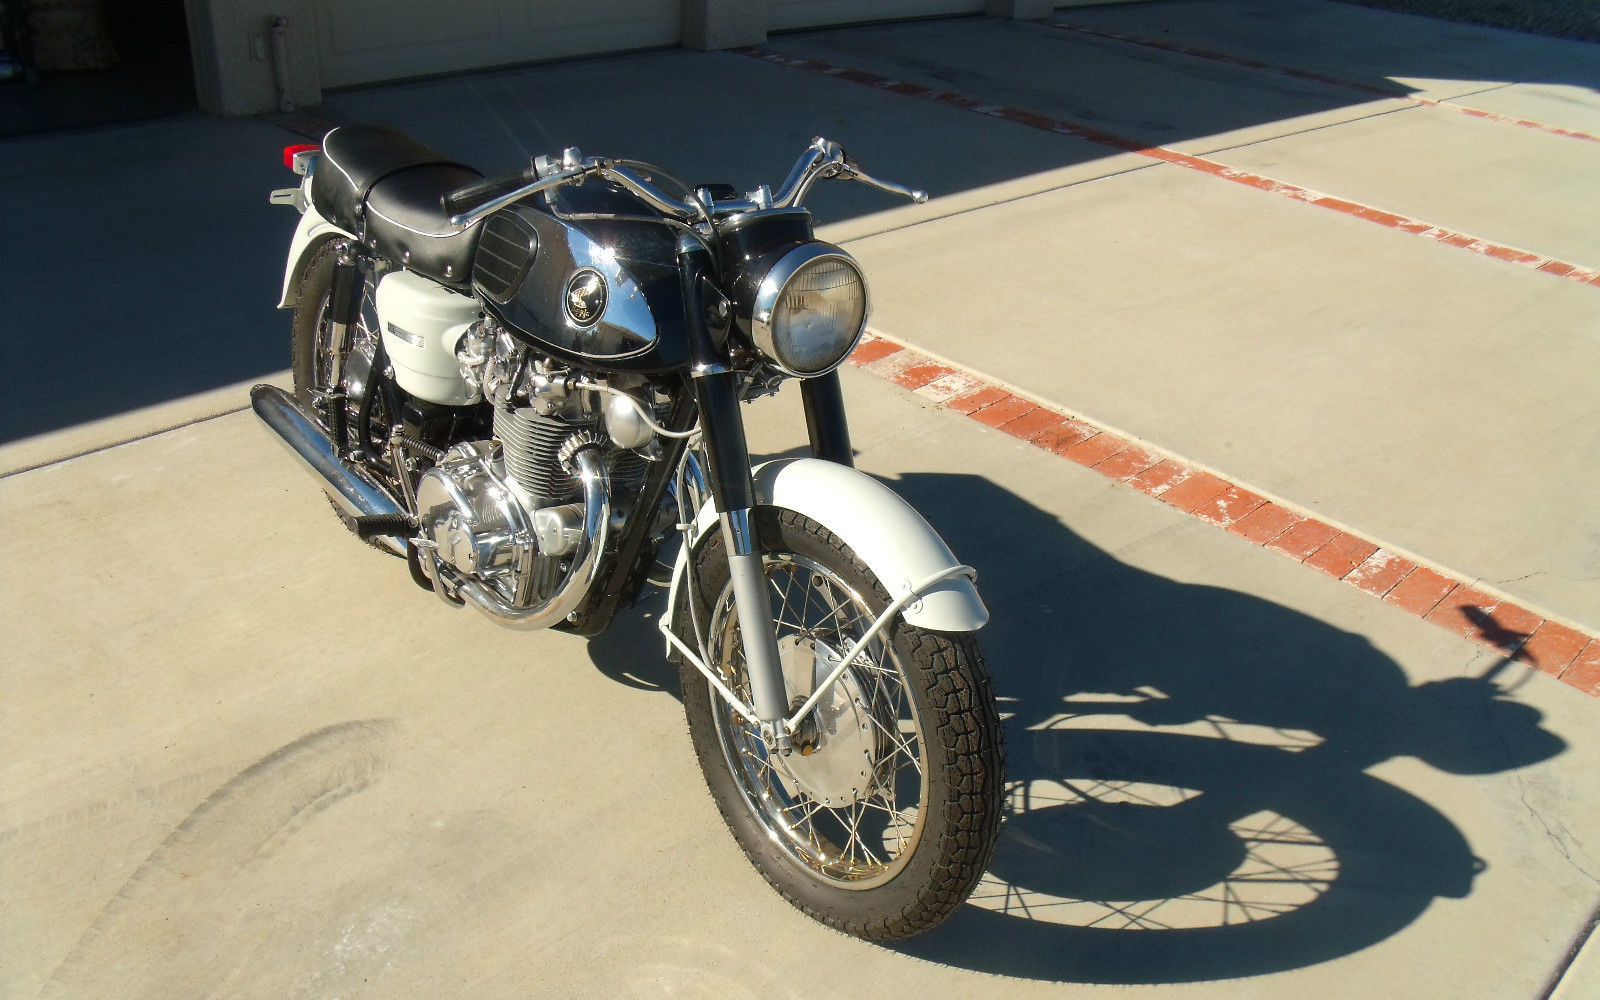 Honda CB450 Black Bomber - 1967 - Front Wheel, Front Forks and Headlight.